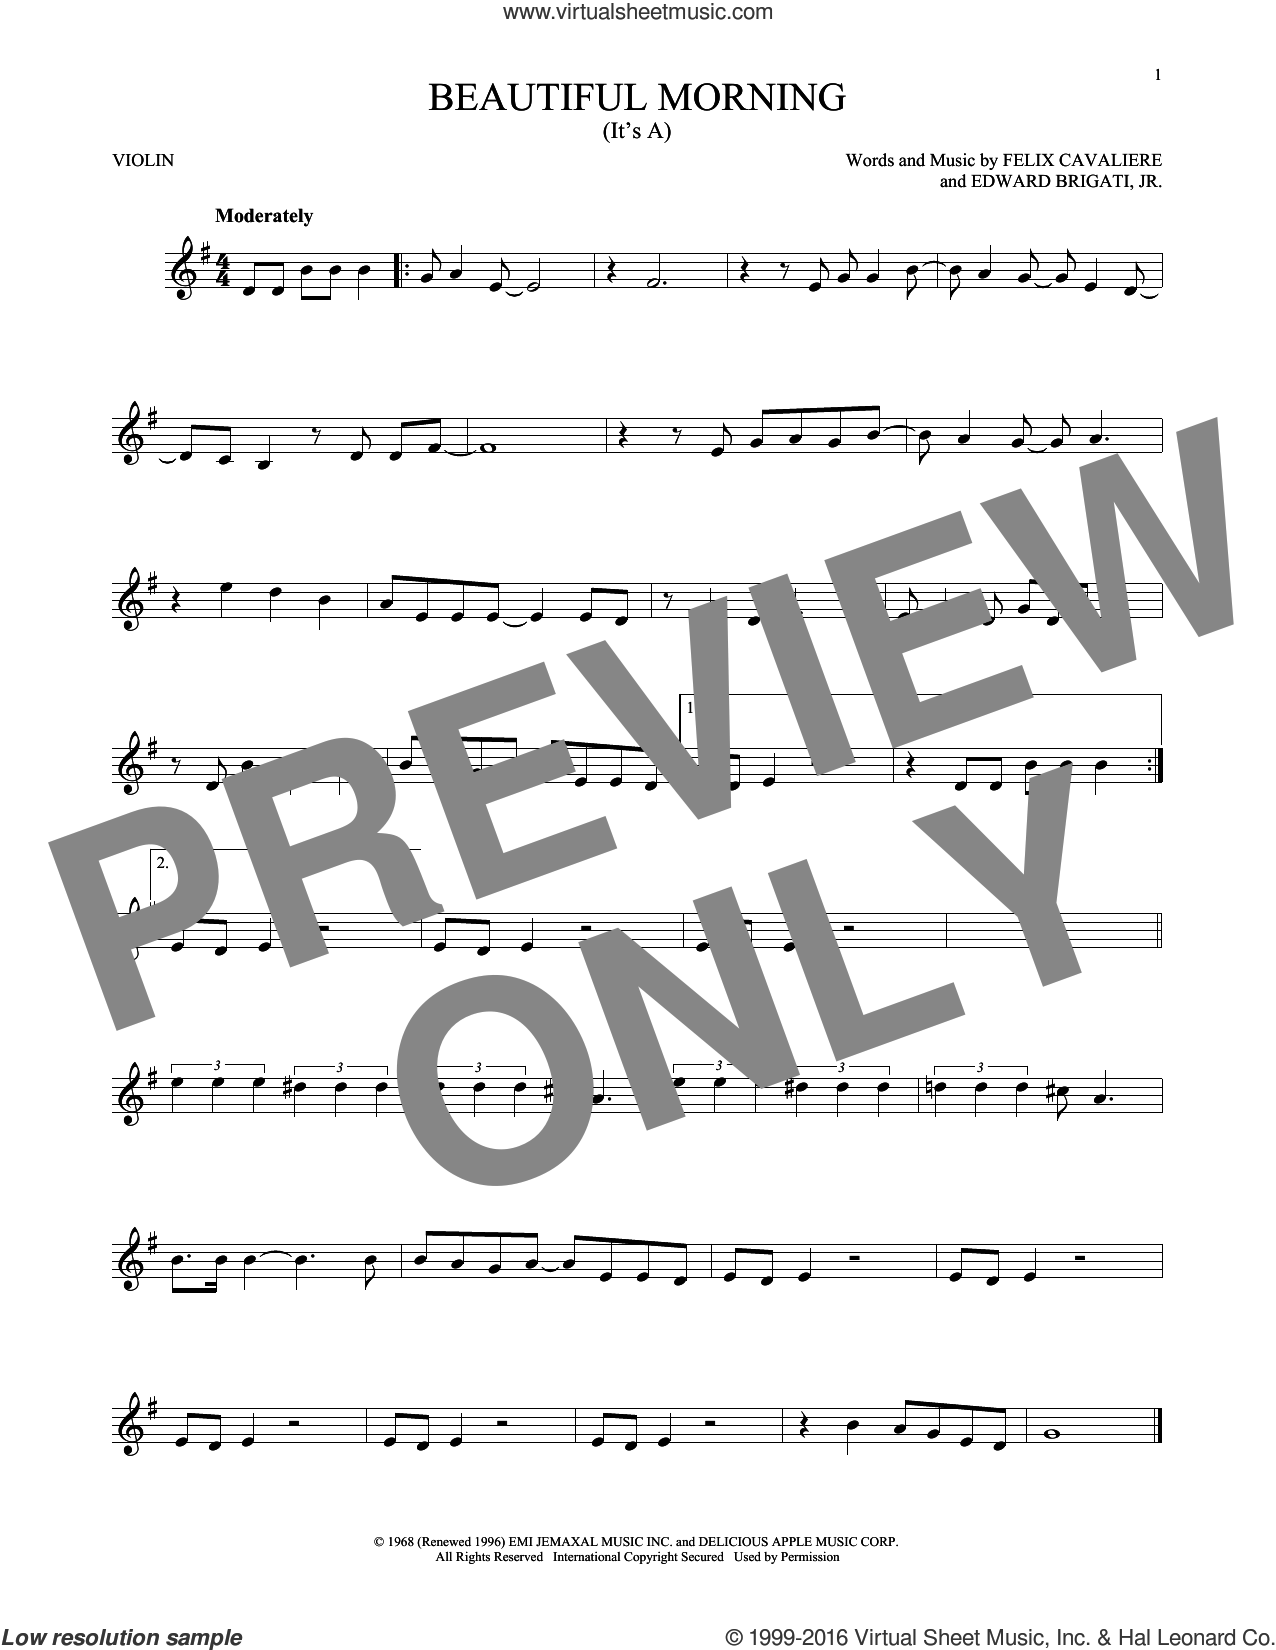 (It's A) Beautiful Morning sheet music for violin solo by The Rascals, Edward Brigati, Jr. and Felix Cavaliere, intermediate skill level